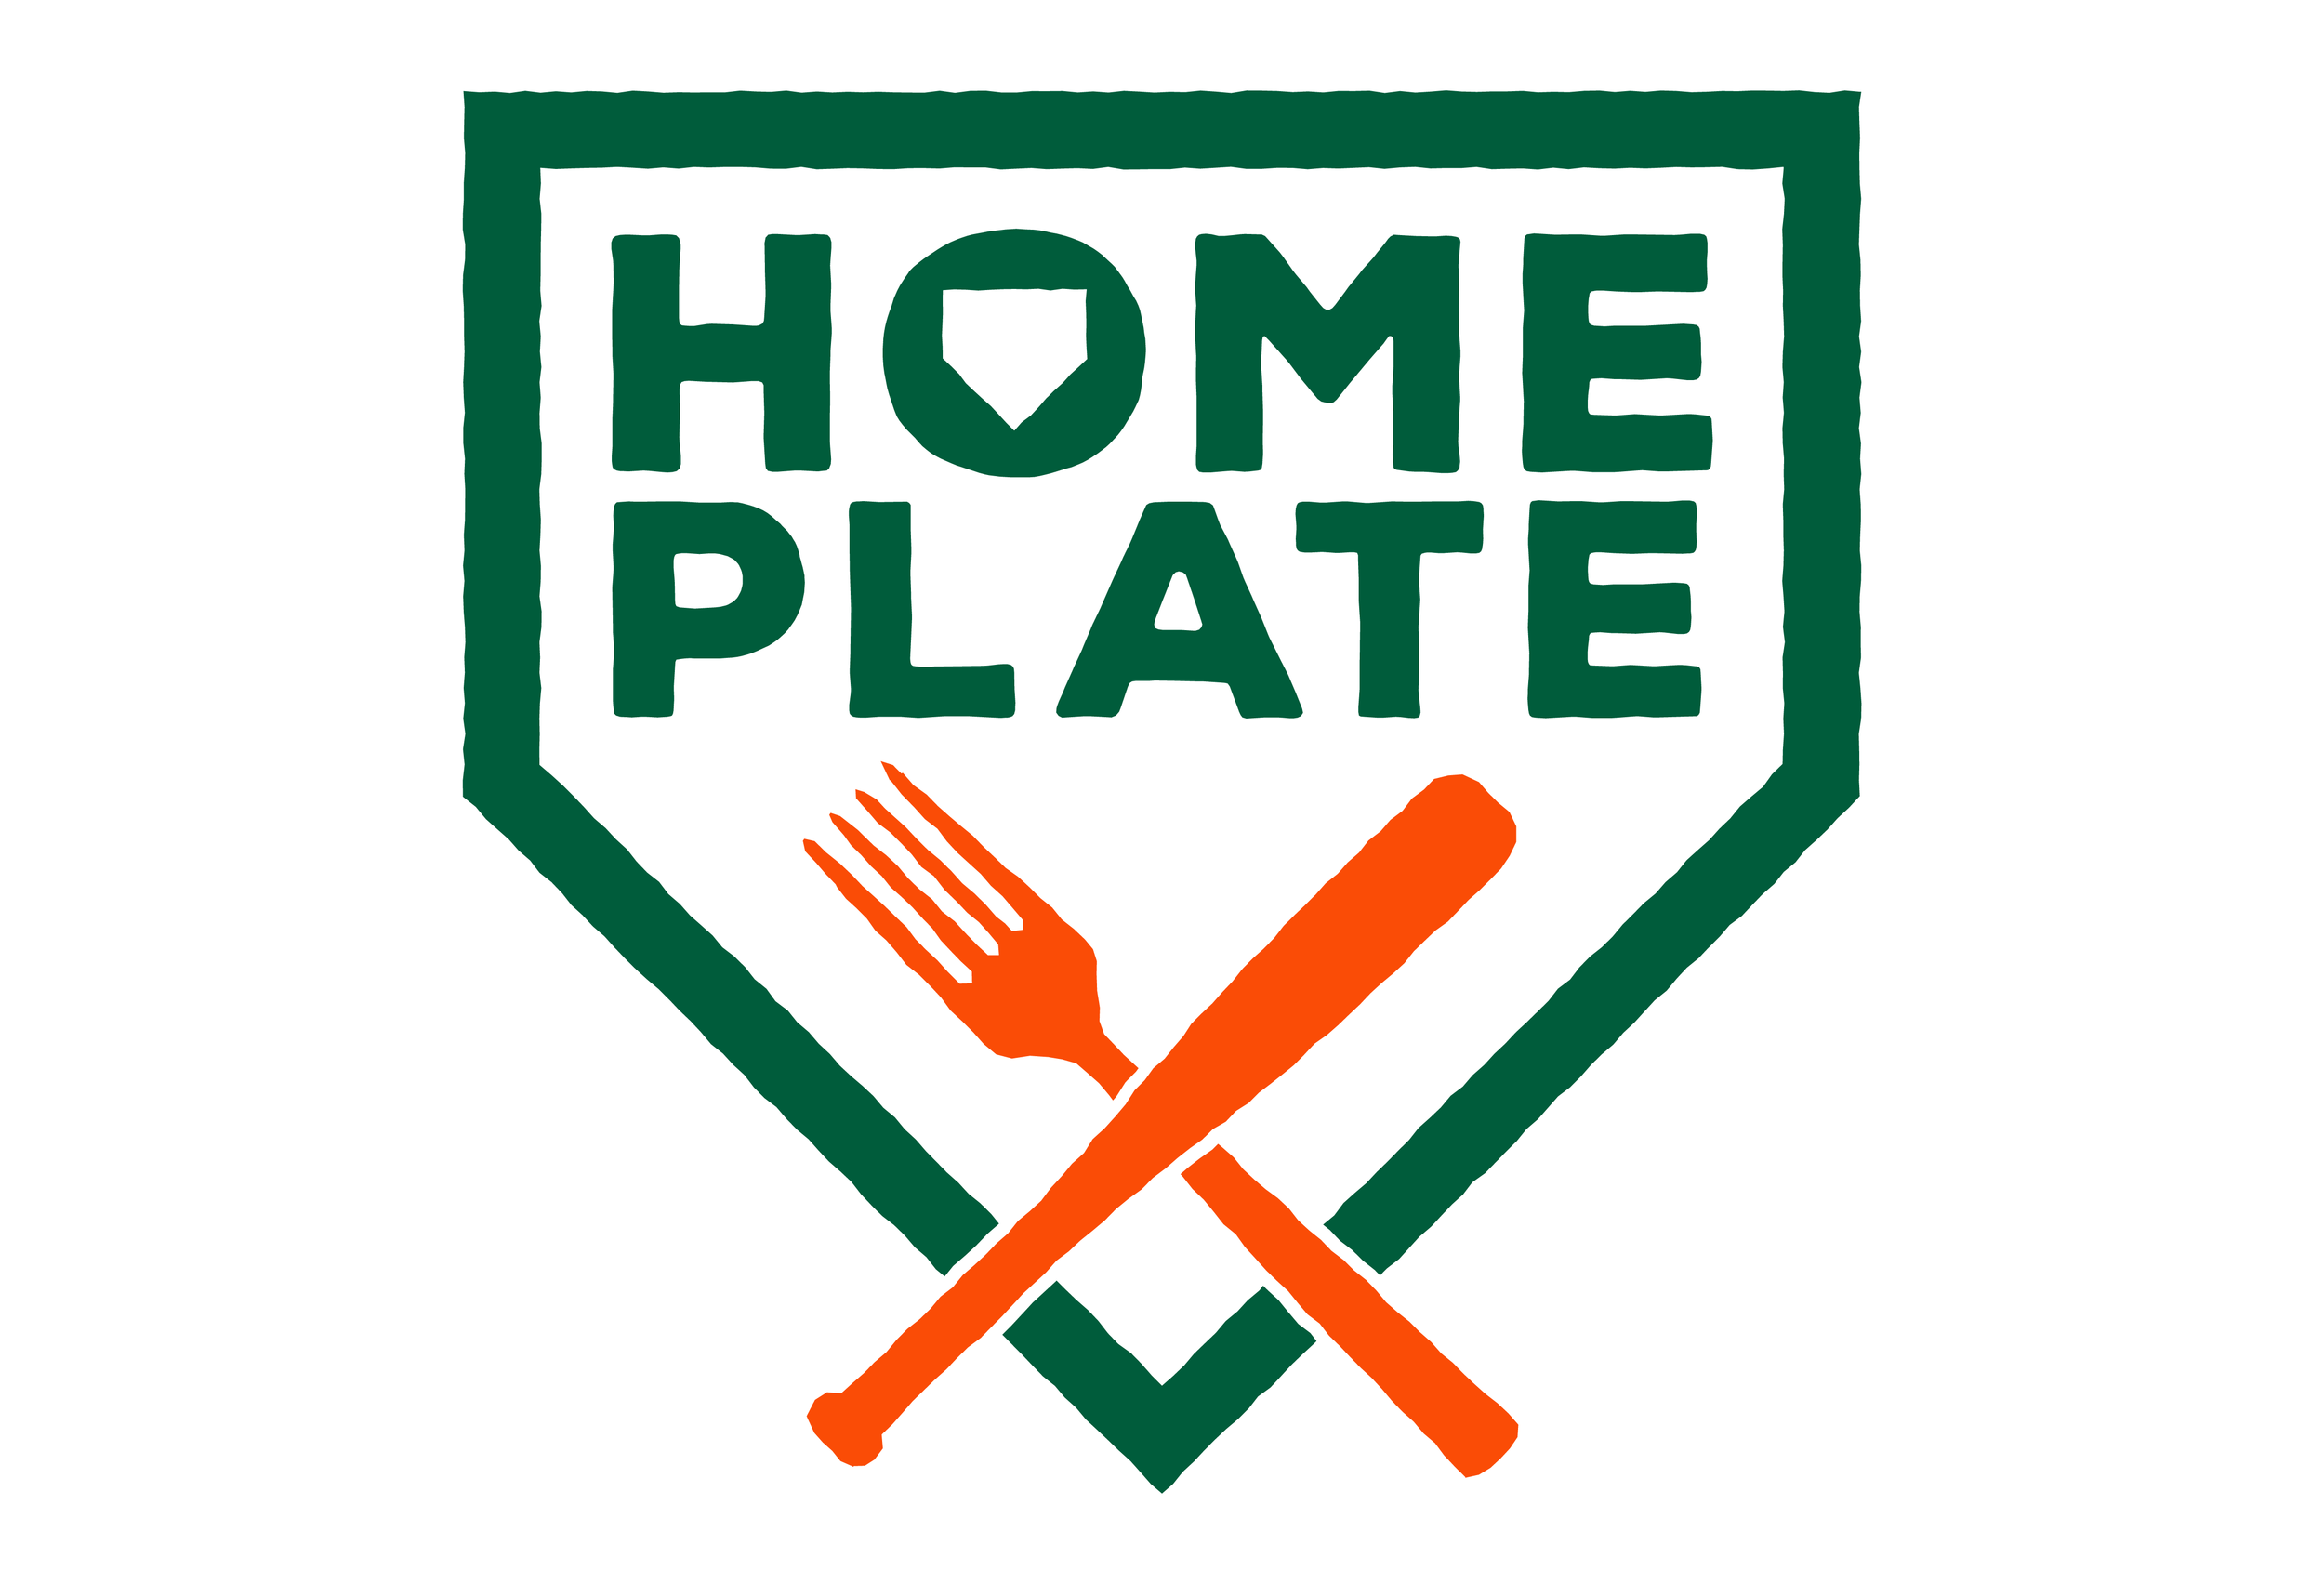 Home Plate concession area logo for food stand.